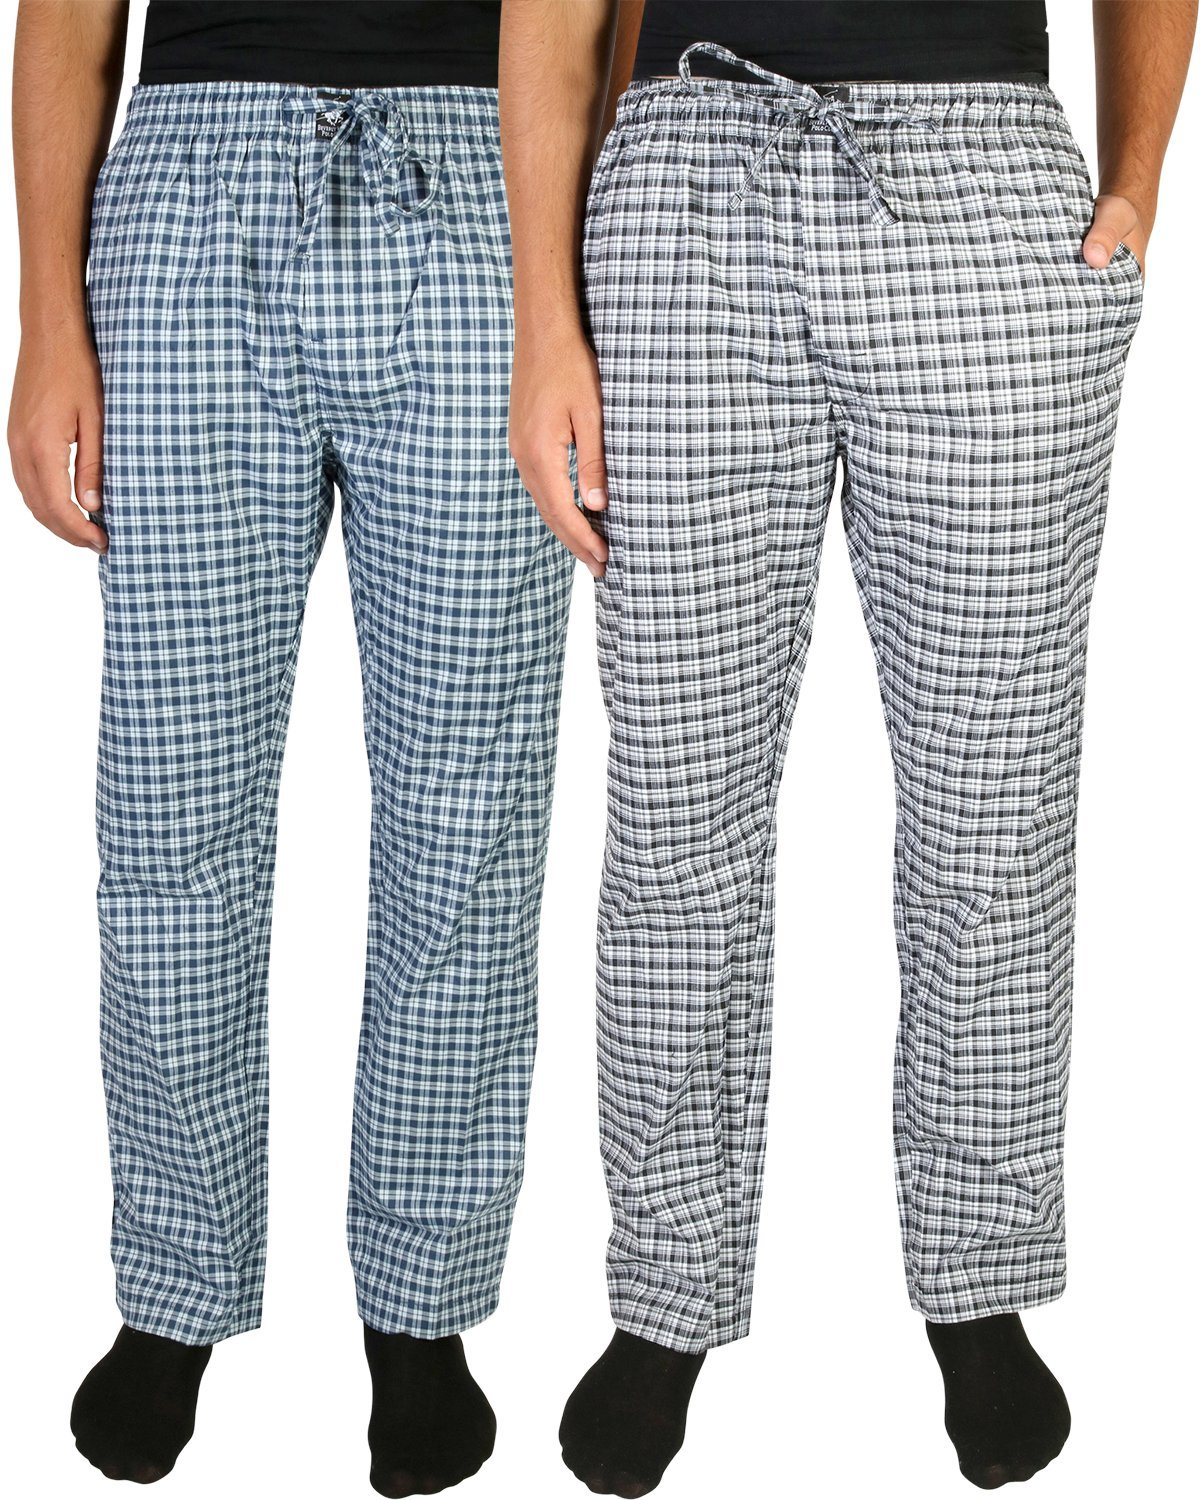 Beverly Hills Polo Club Men's Woven Plaid Sleep Lounge Pajama Pants (2-Pack), White & Navy/White & Blue, Medium (32-34)'